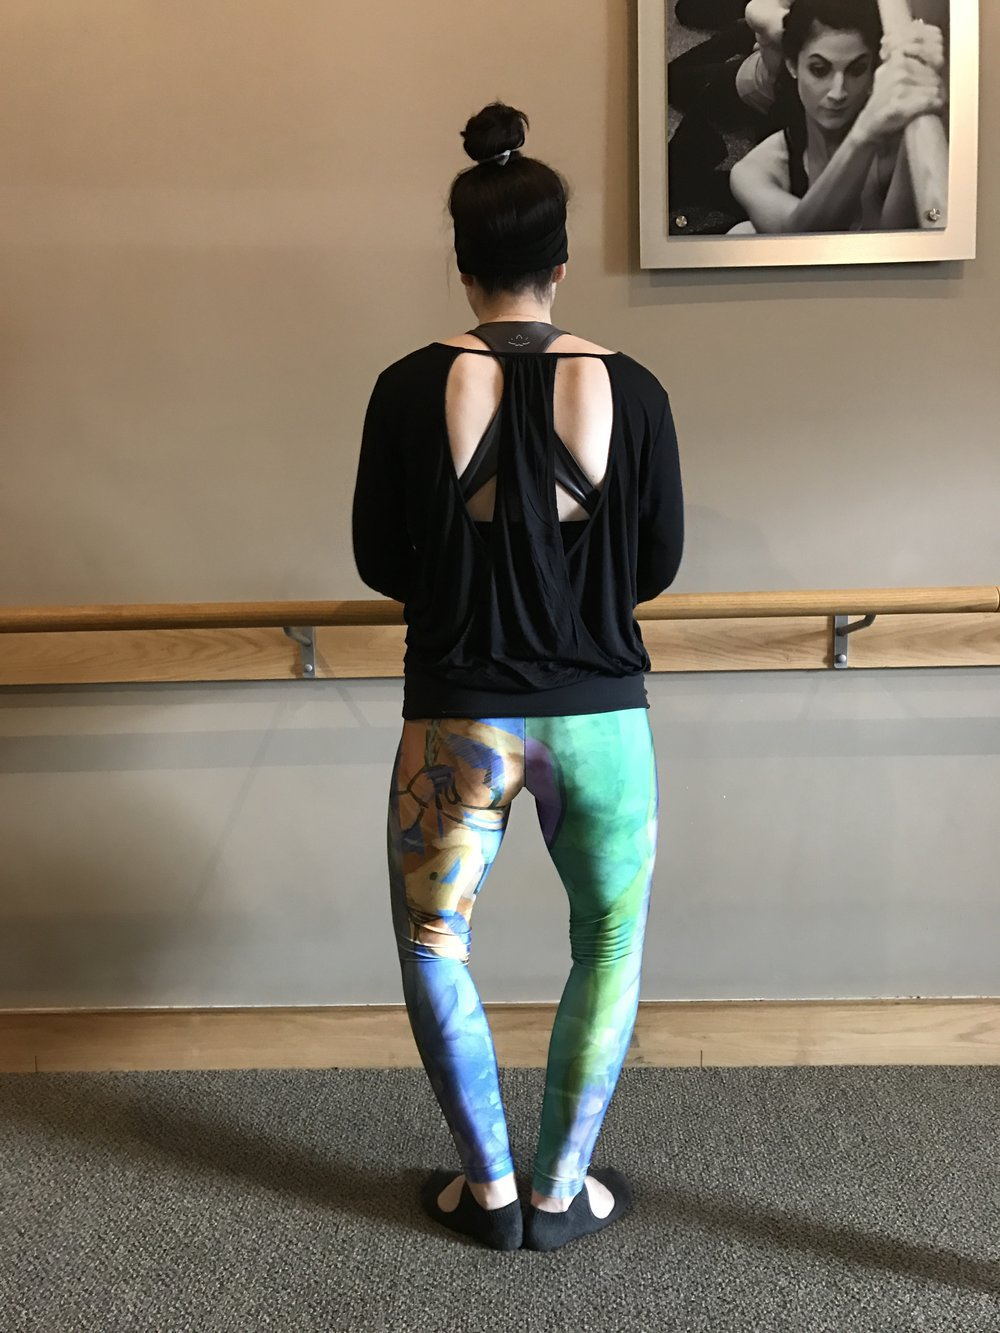 At the  Pure Barre  studio on West Portal, instructor  Kelly Leslie  wears my art leggings.